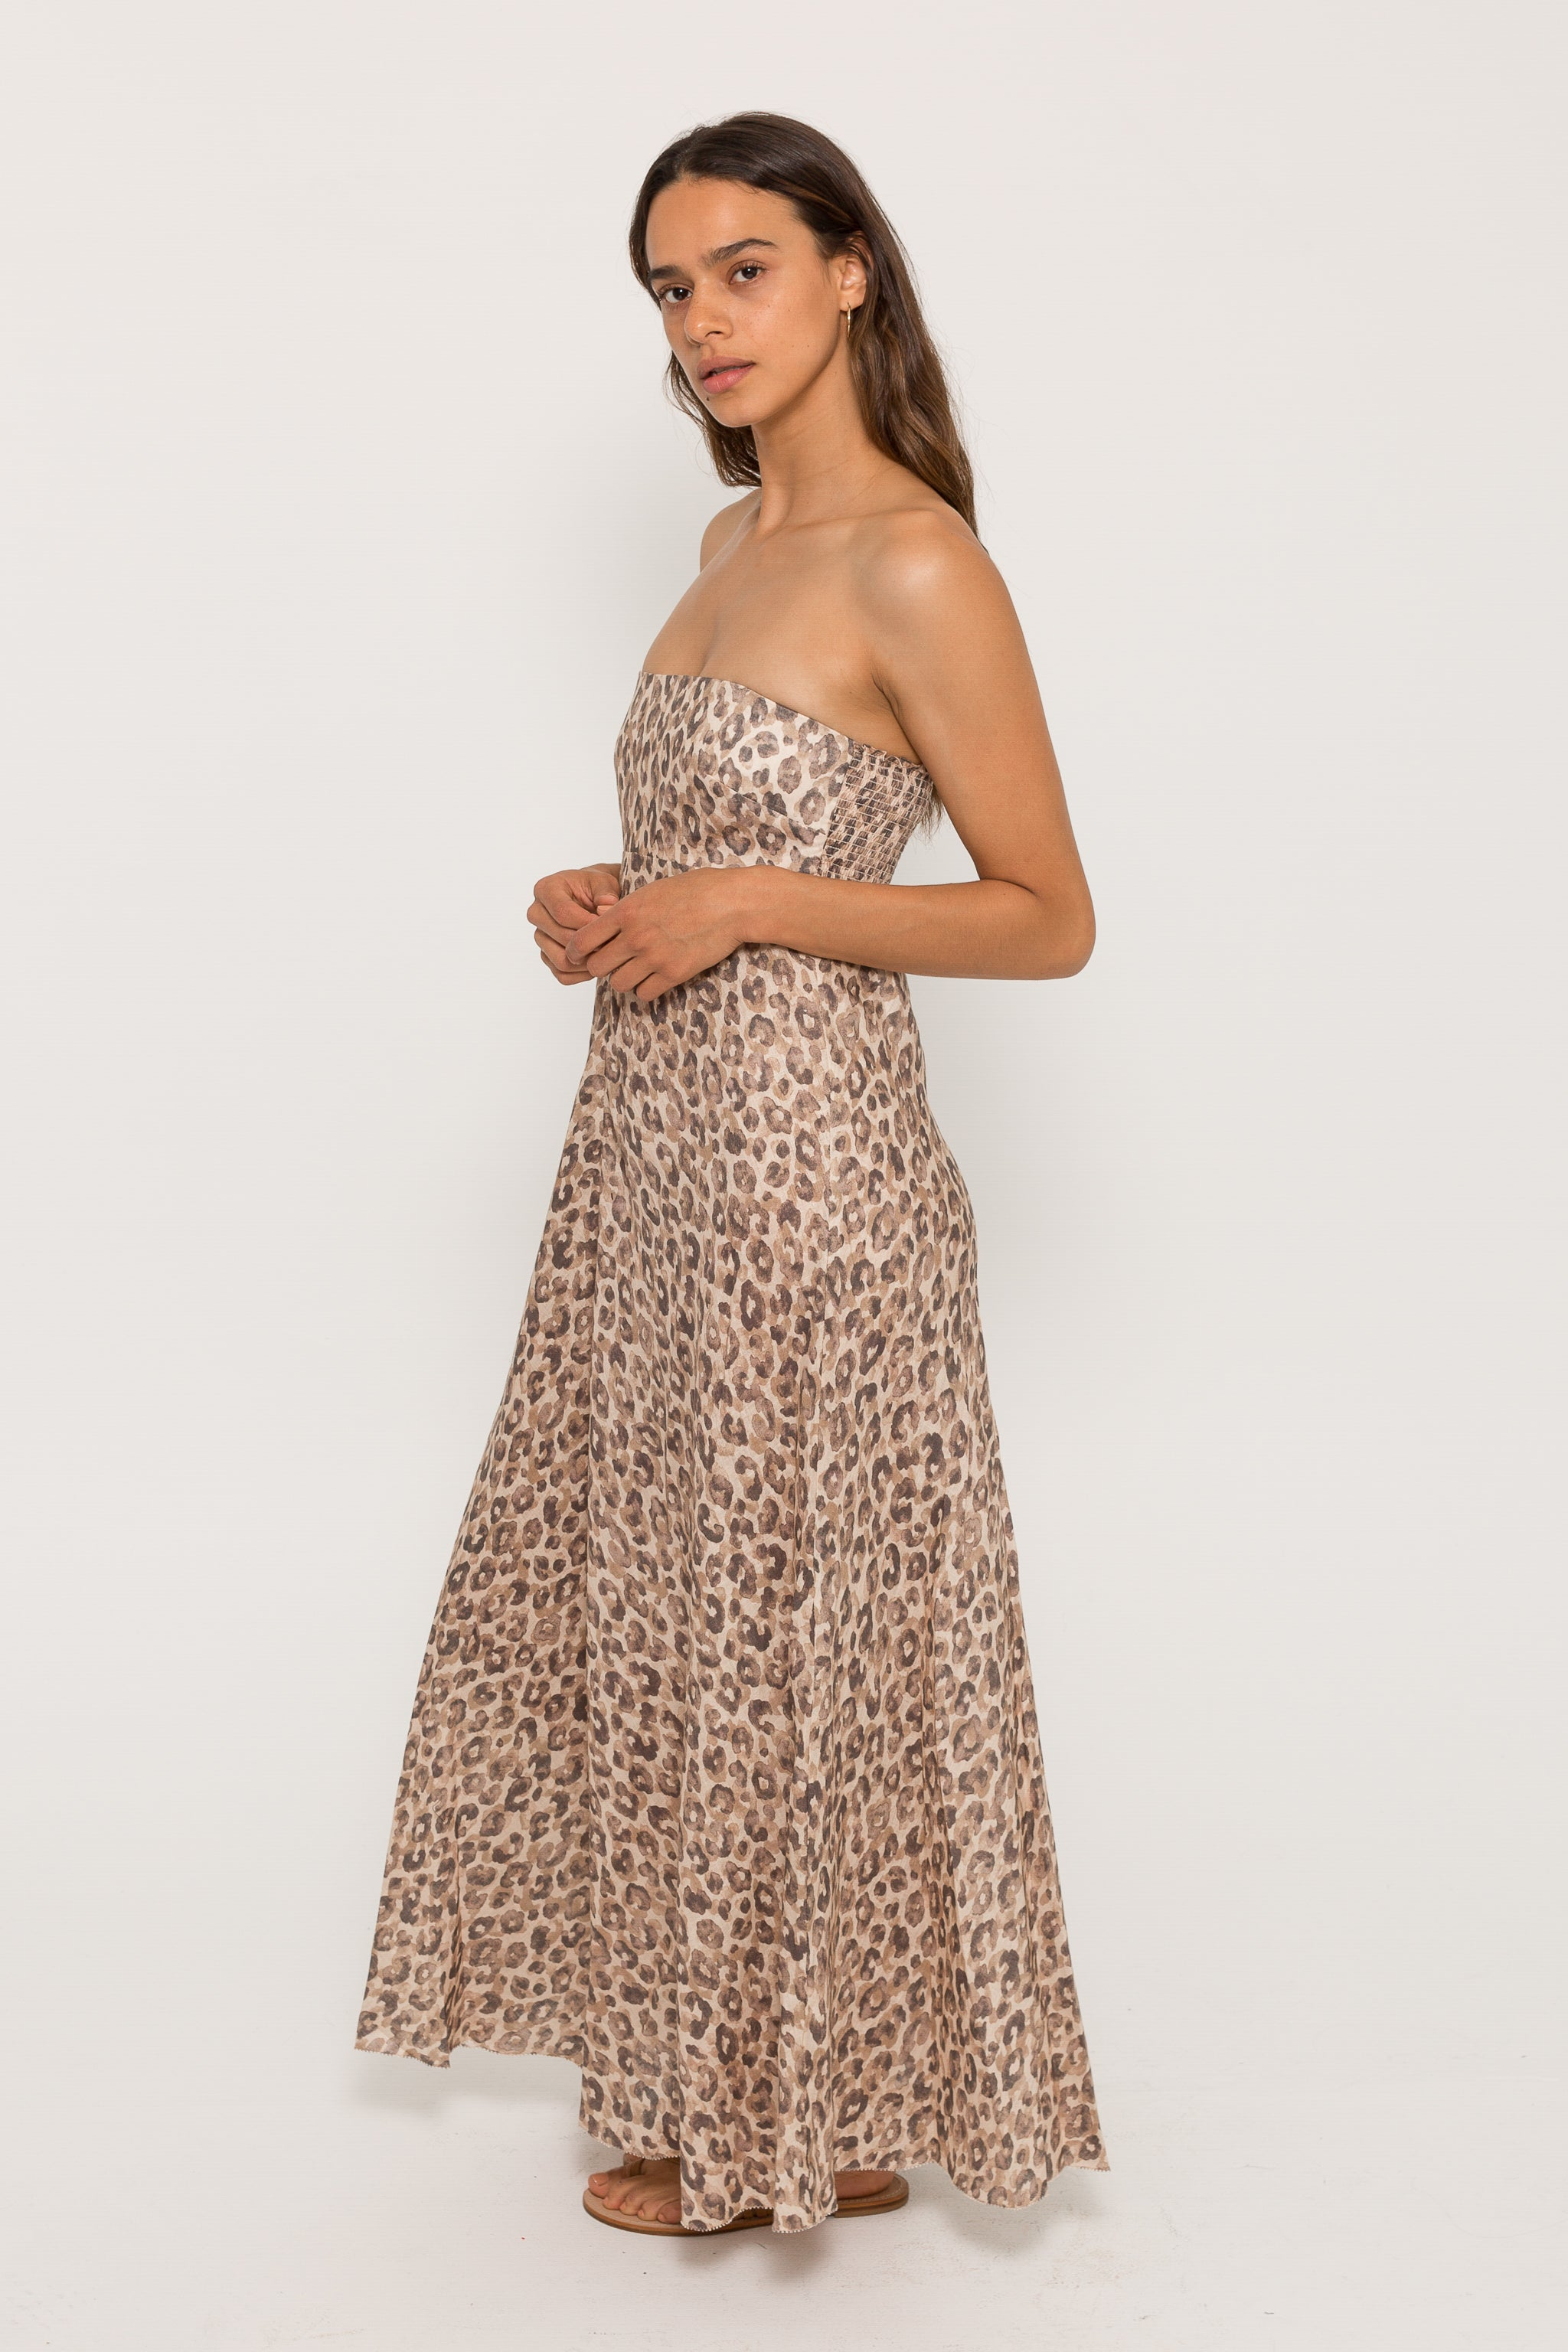 MELODY STRAPLESS DRESS - Madison Los Angeles